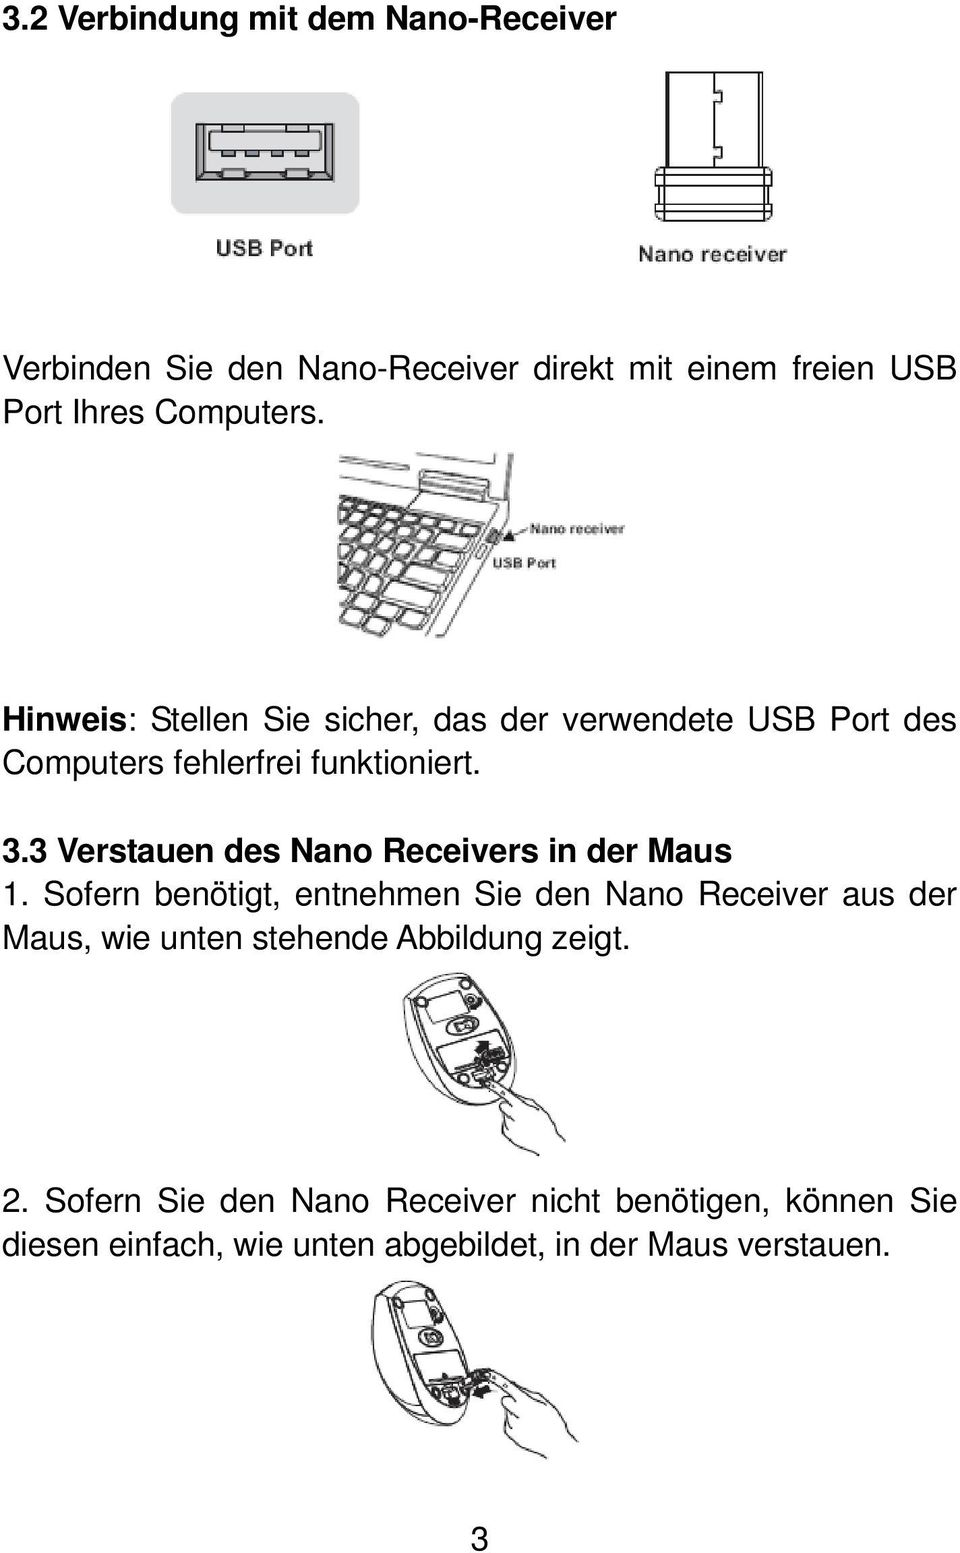 3 Verstauen des Nano Receivers in der Maus 1.